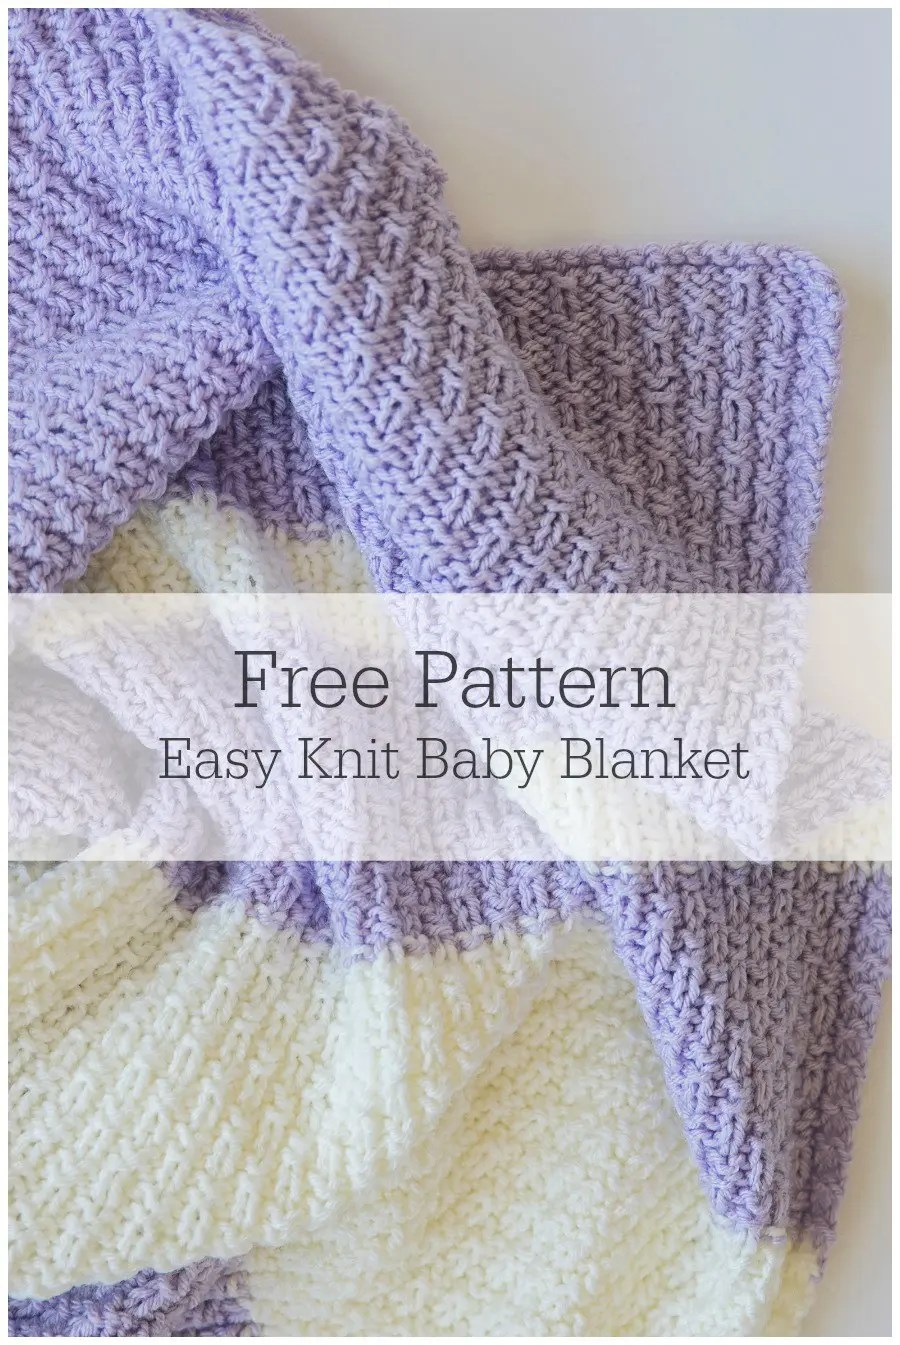 Garnstudio Knitting Patterns : Easy Knit Baby Blanket Pattern - Leelee KnitsLeelee Knits